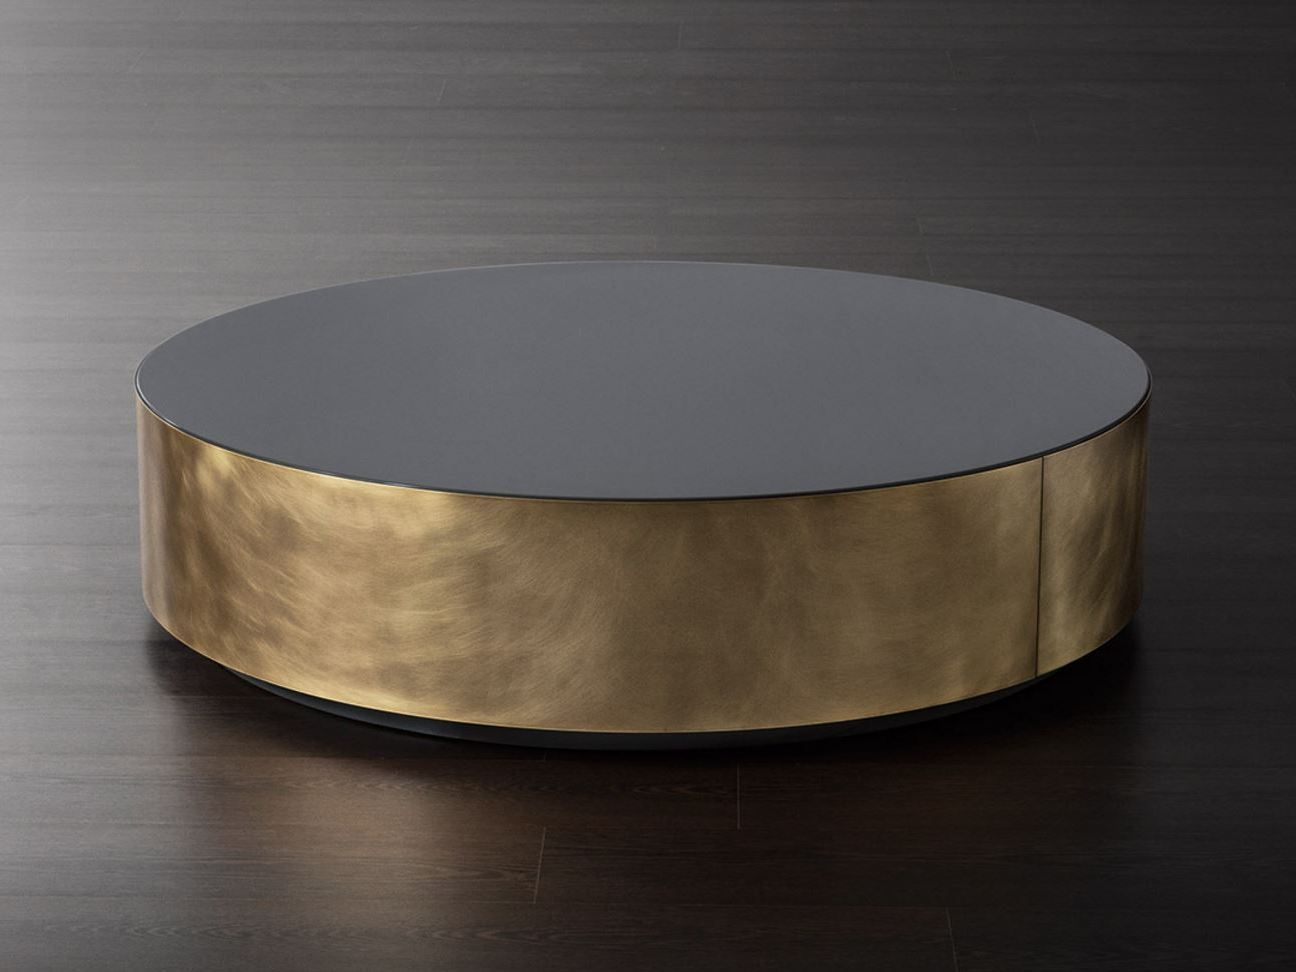 belt round coffee table by meridiani ideas for the house. Black Bedroom Furniture Sets. Home Design Ideas